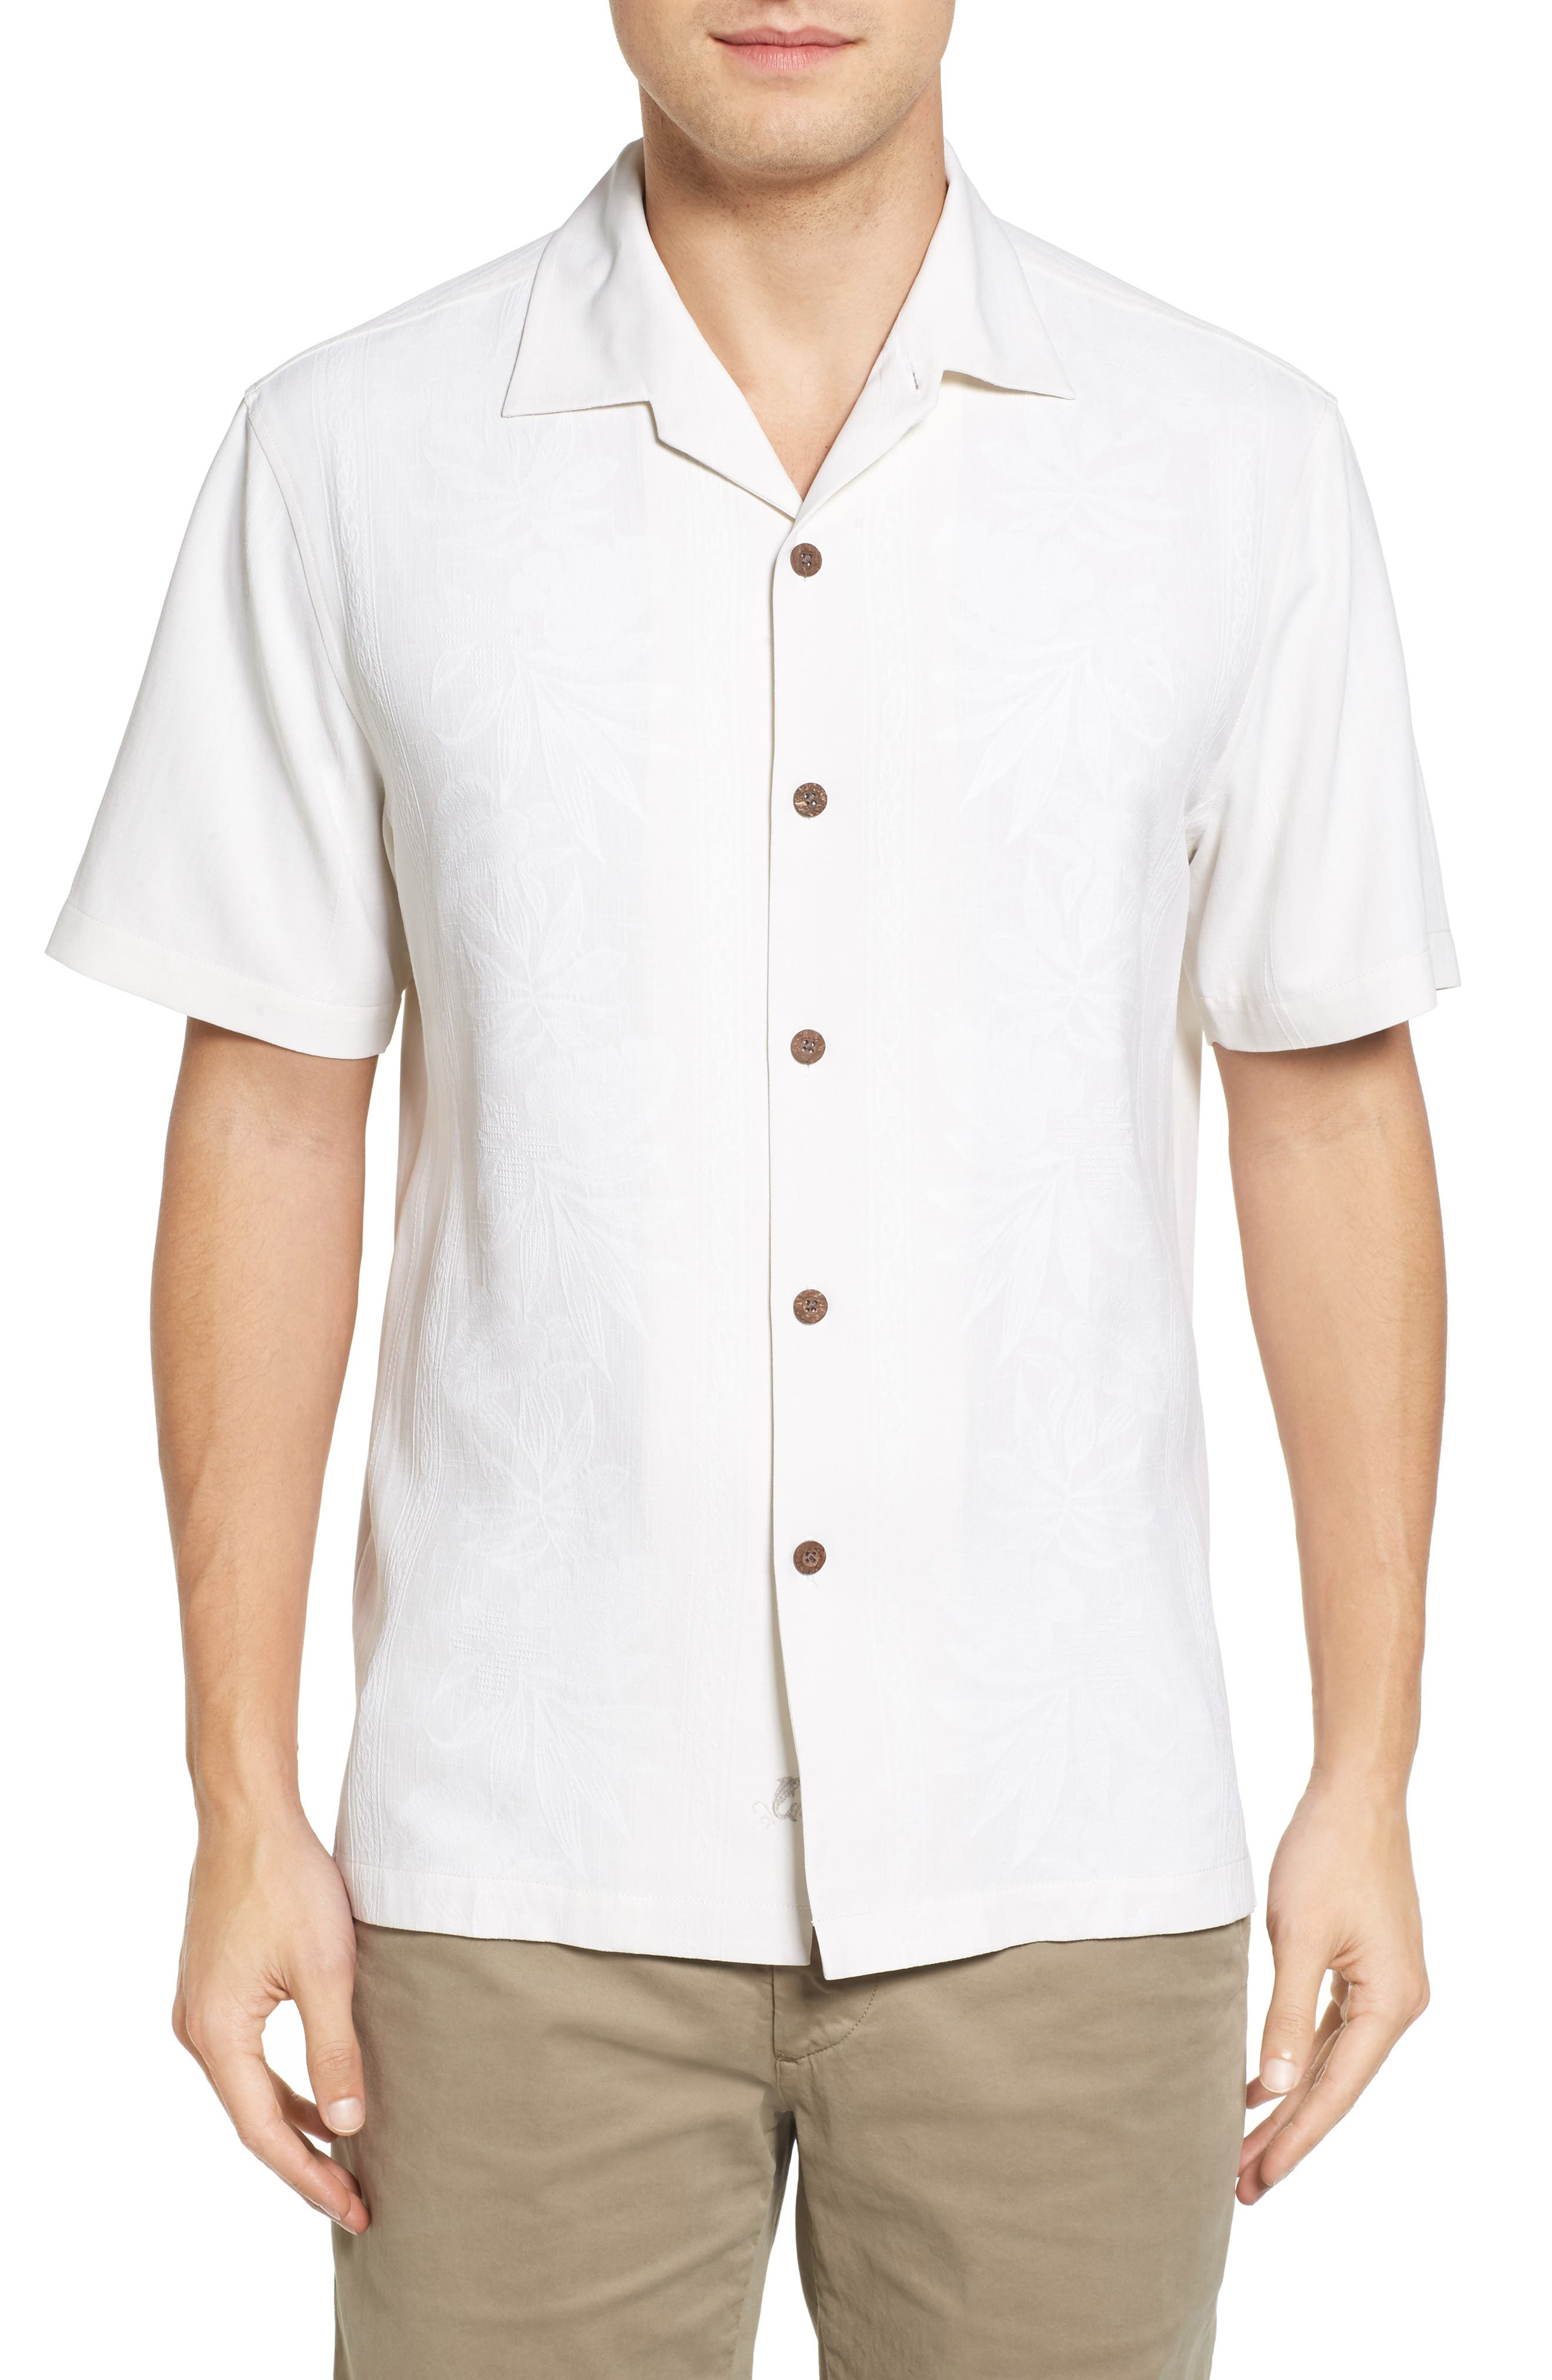 Main Image - Tommy Bahama Pacific Standard Fit Floral Silk Camp Shirt